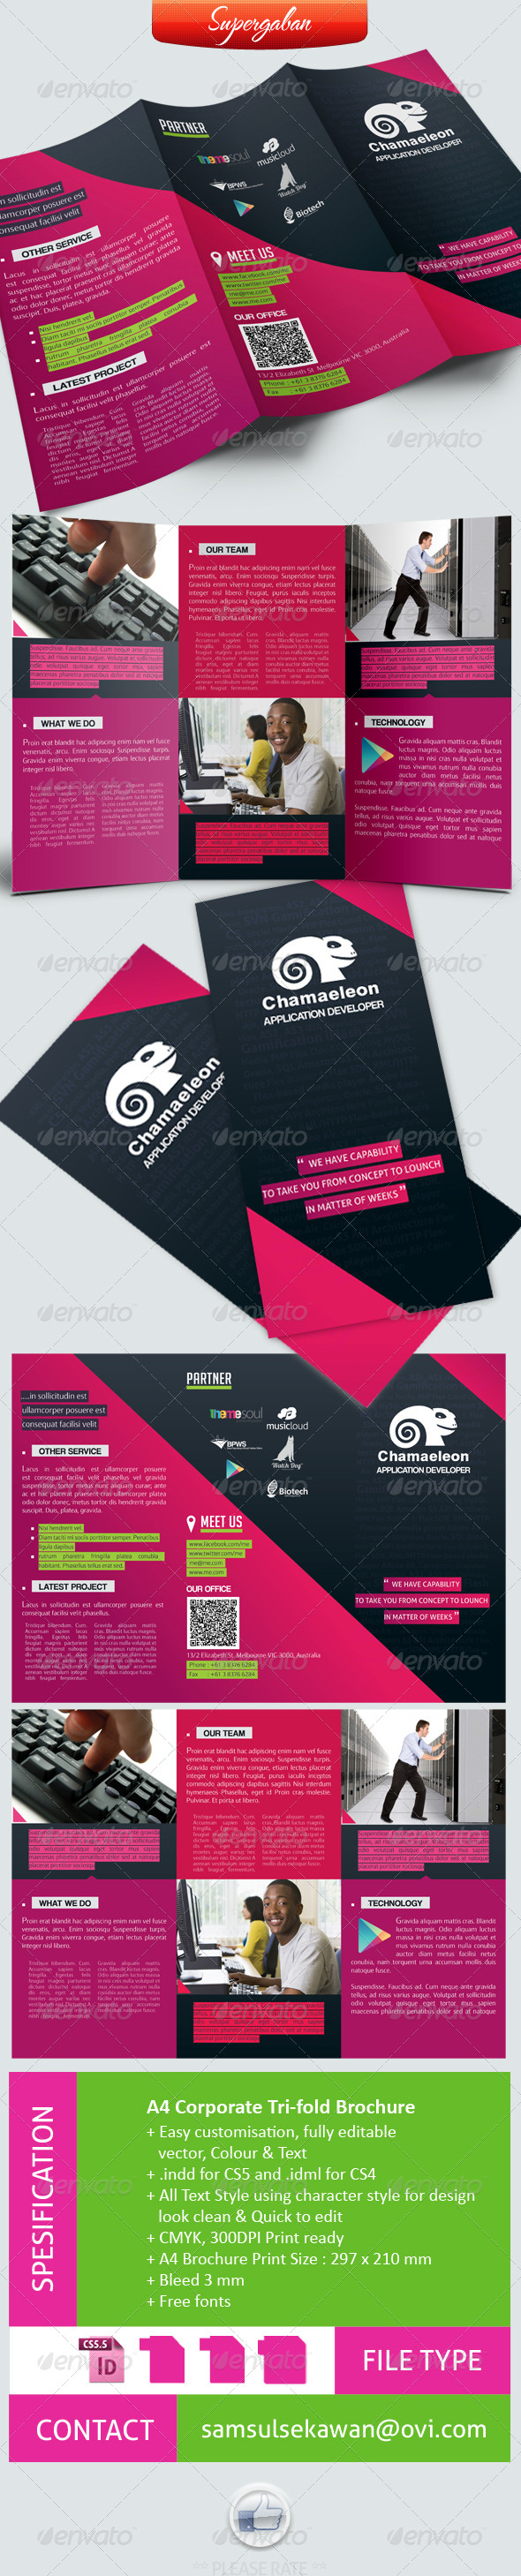 A4 Trifold Corporate Brochure - Brochures Print Templates